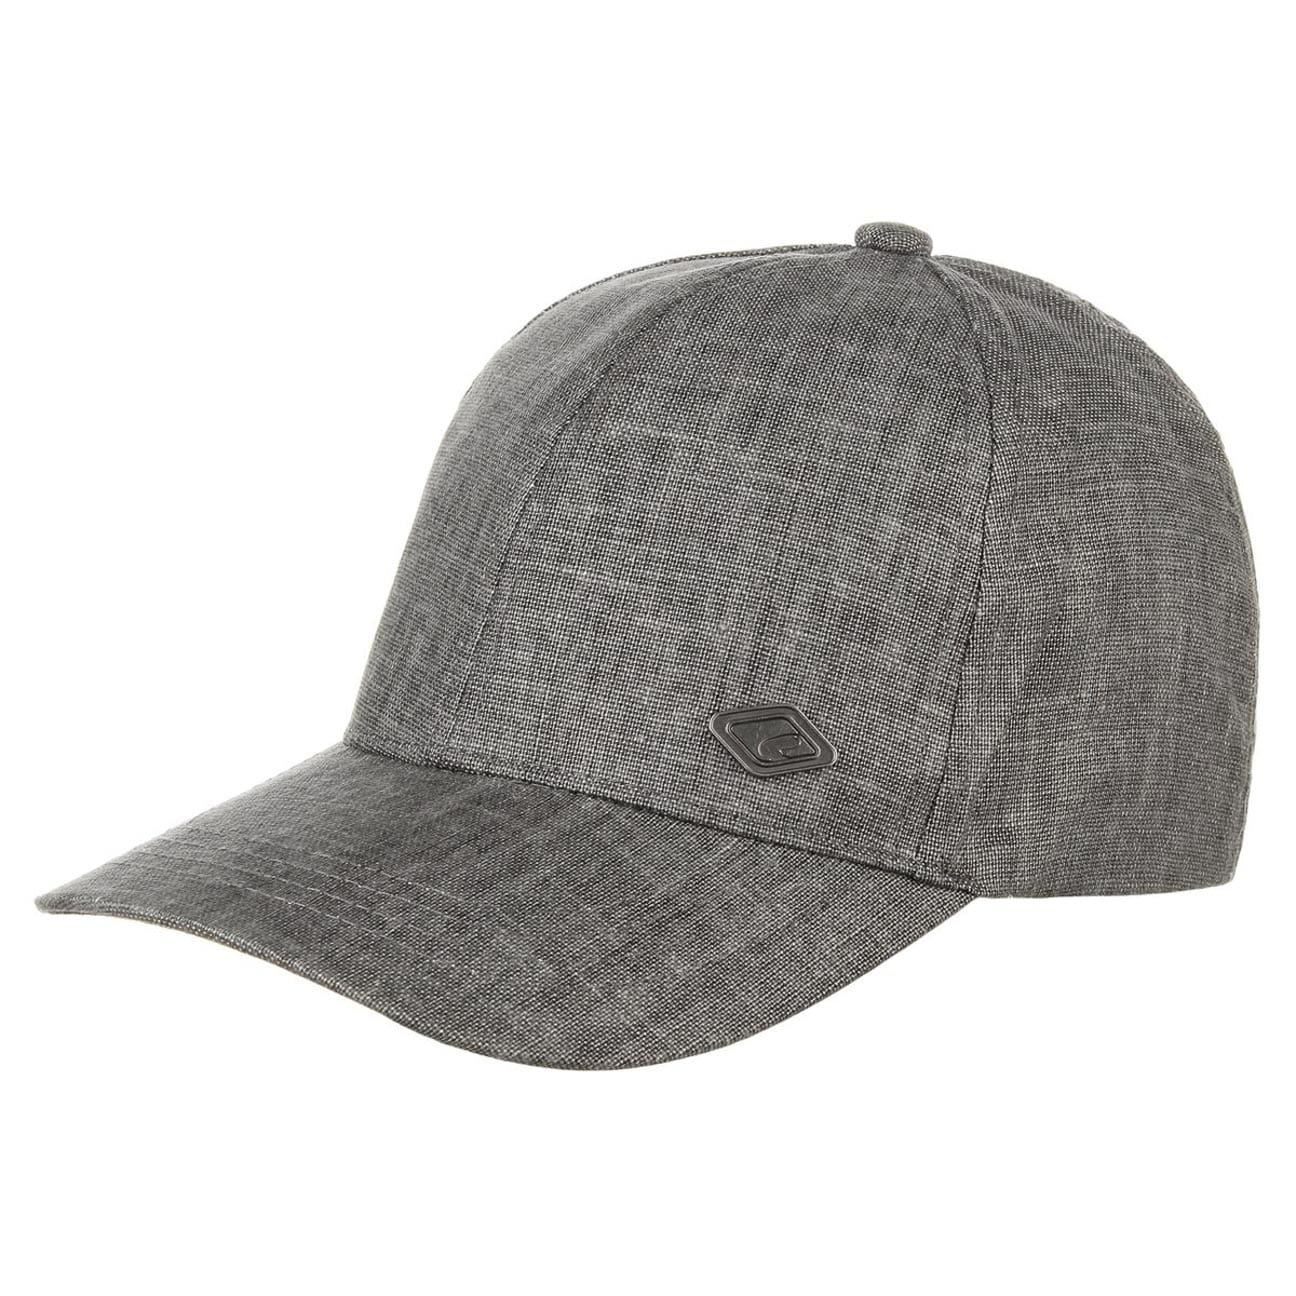 ibiza pro baseball cap by chillouts gbp 15 95 gt hats